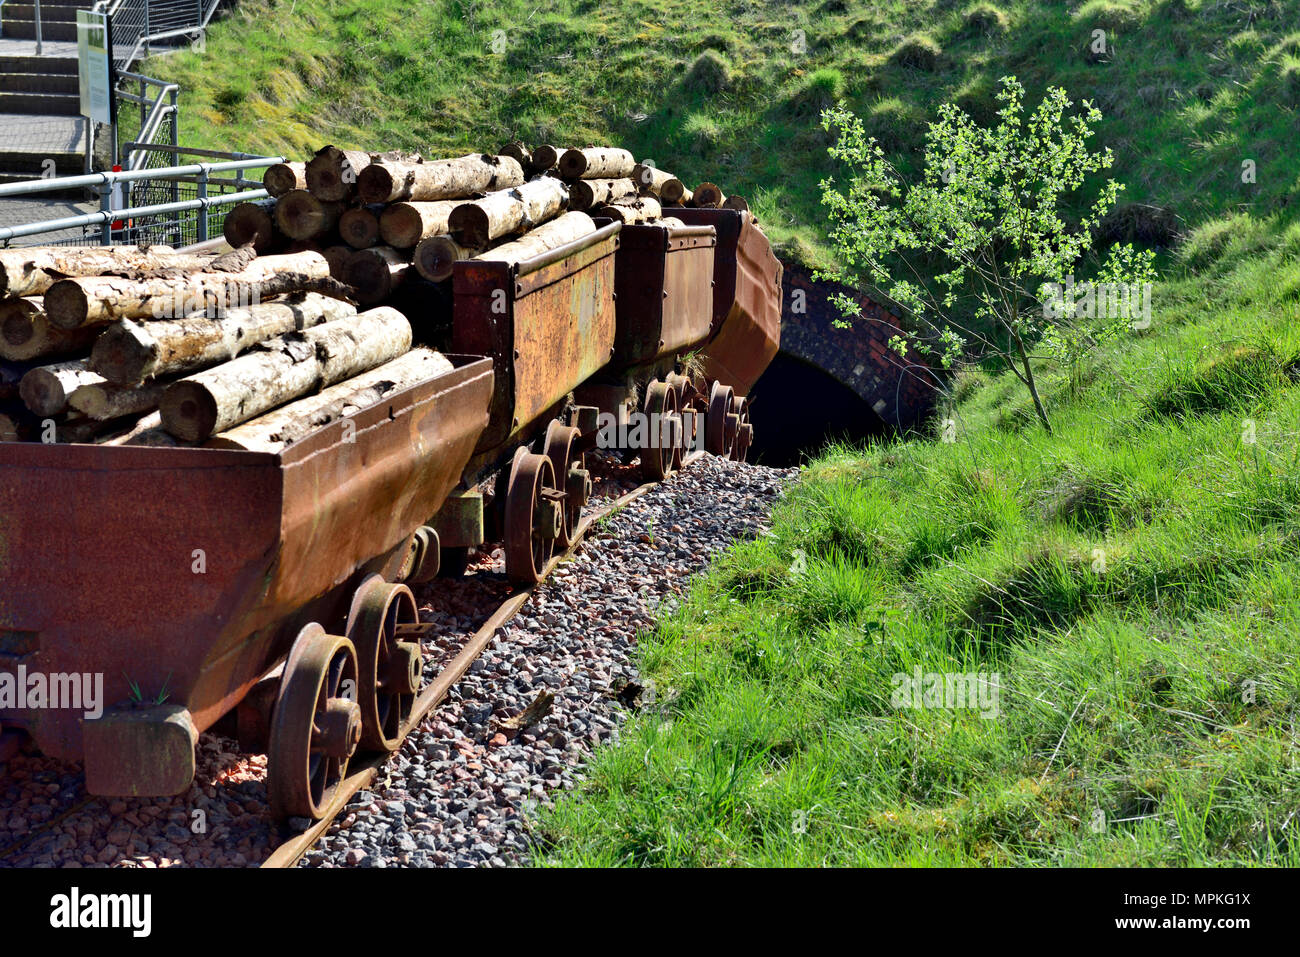 Railway mine carts loaded with wooden pit props going into mine shaft at Big Pit: National Coal Museum, South Wales Valleys, Blaenavon, UK - Stock Image